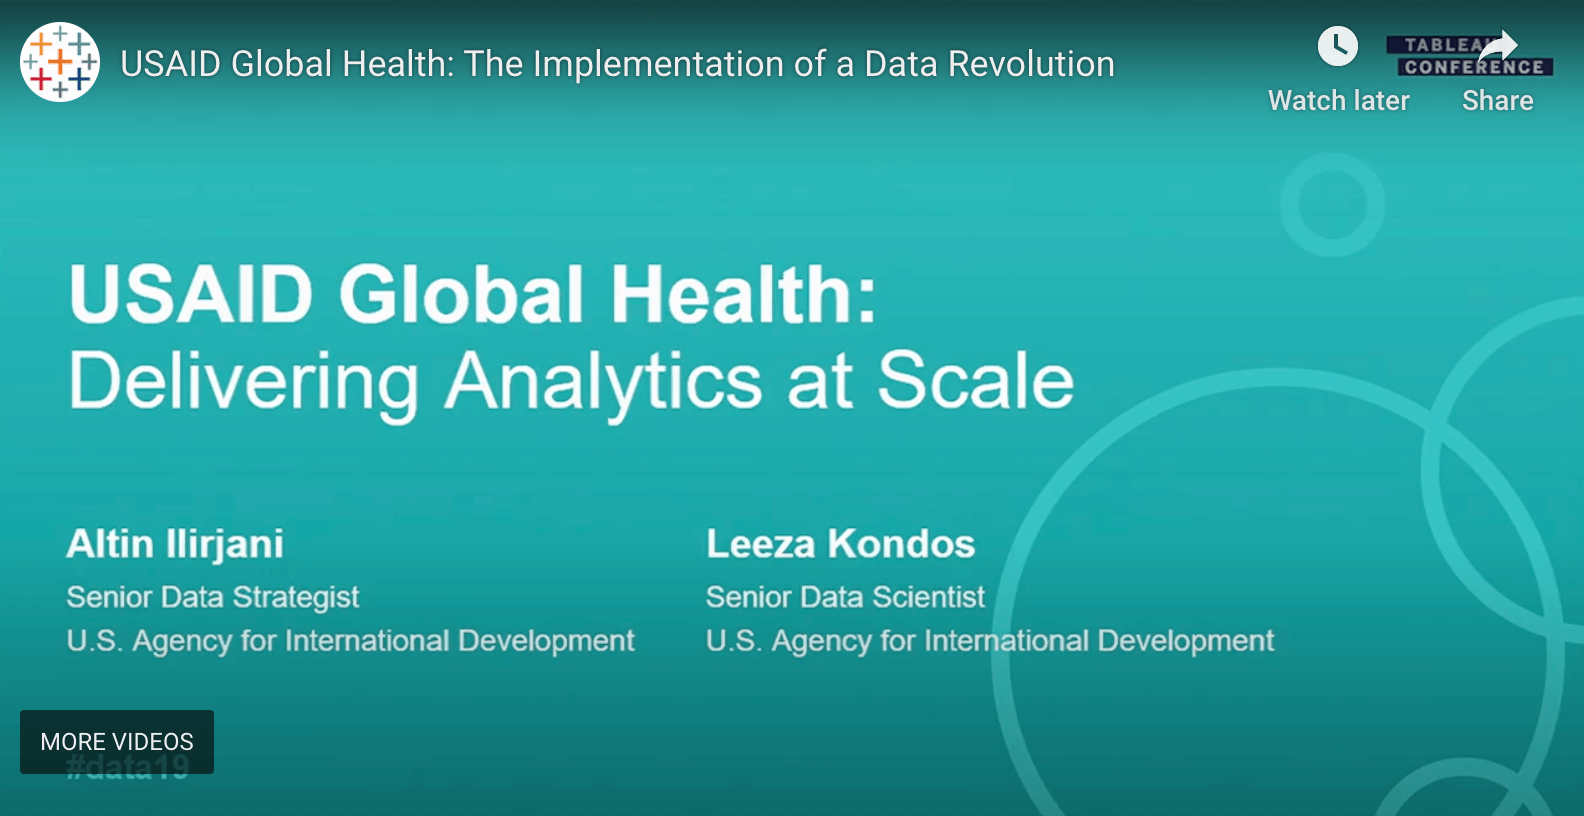 瀏覽至 USAID: Delivering Analytics at Scale